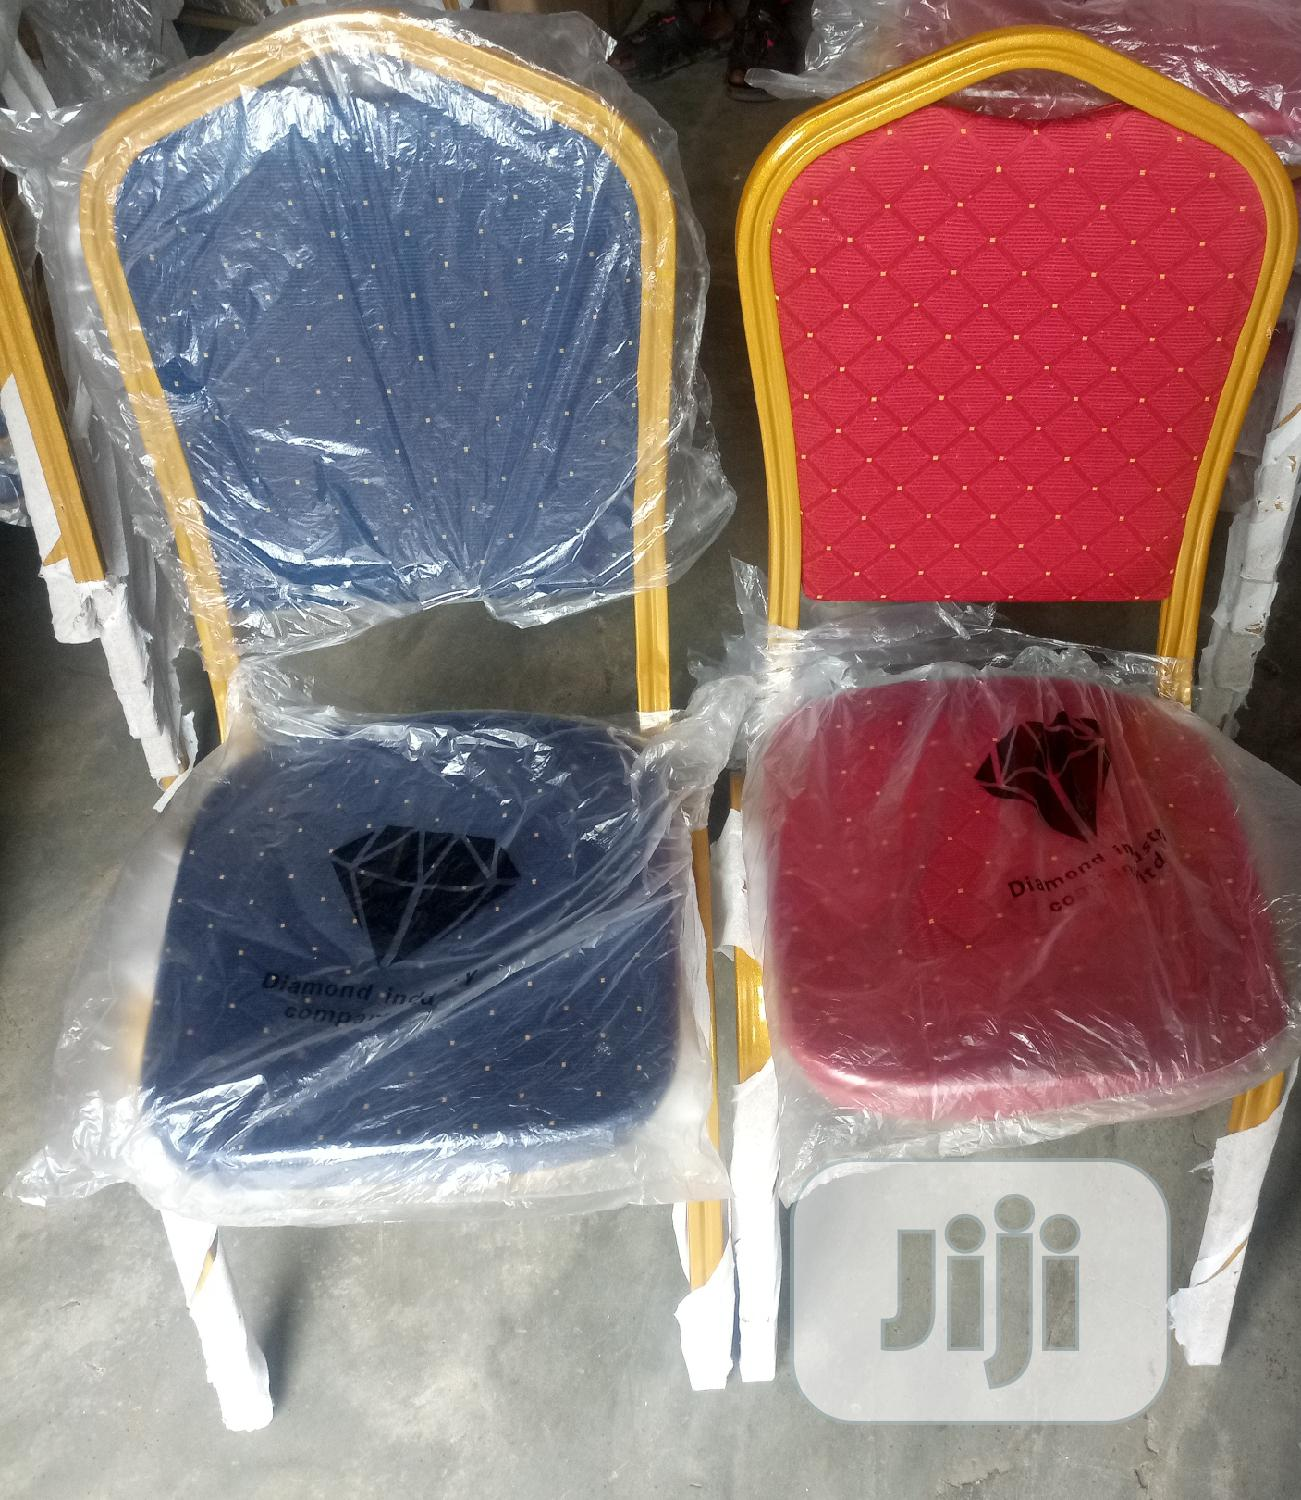 Higher Quality Multipurpose SURPASS Banquet Chairs In Stock